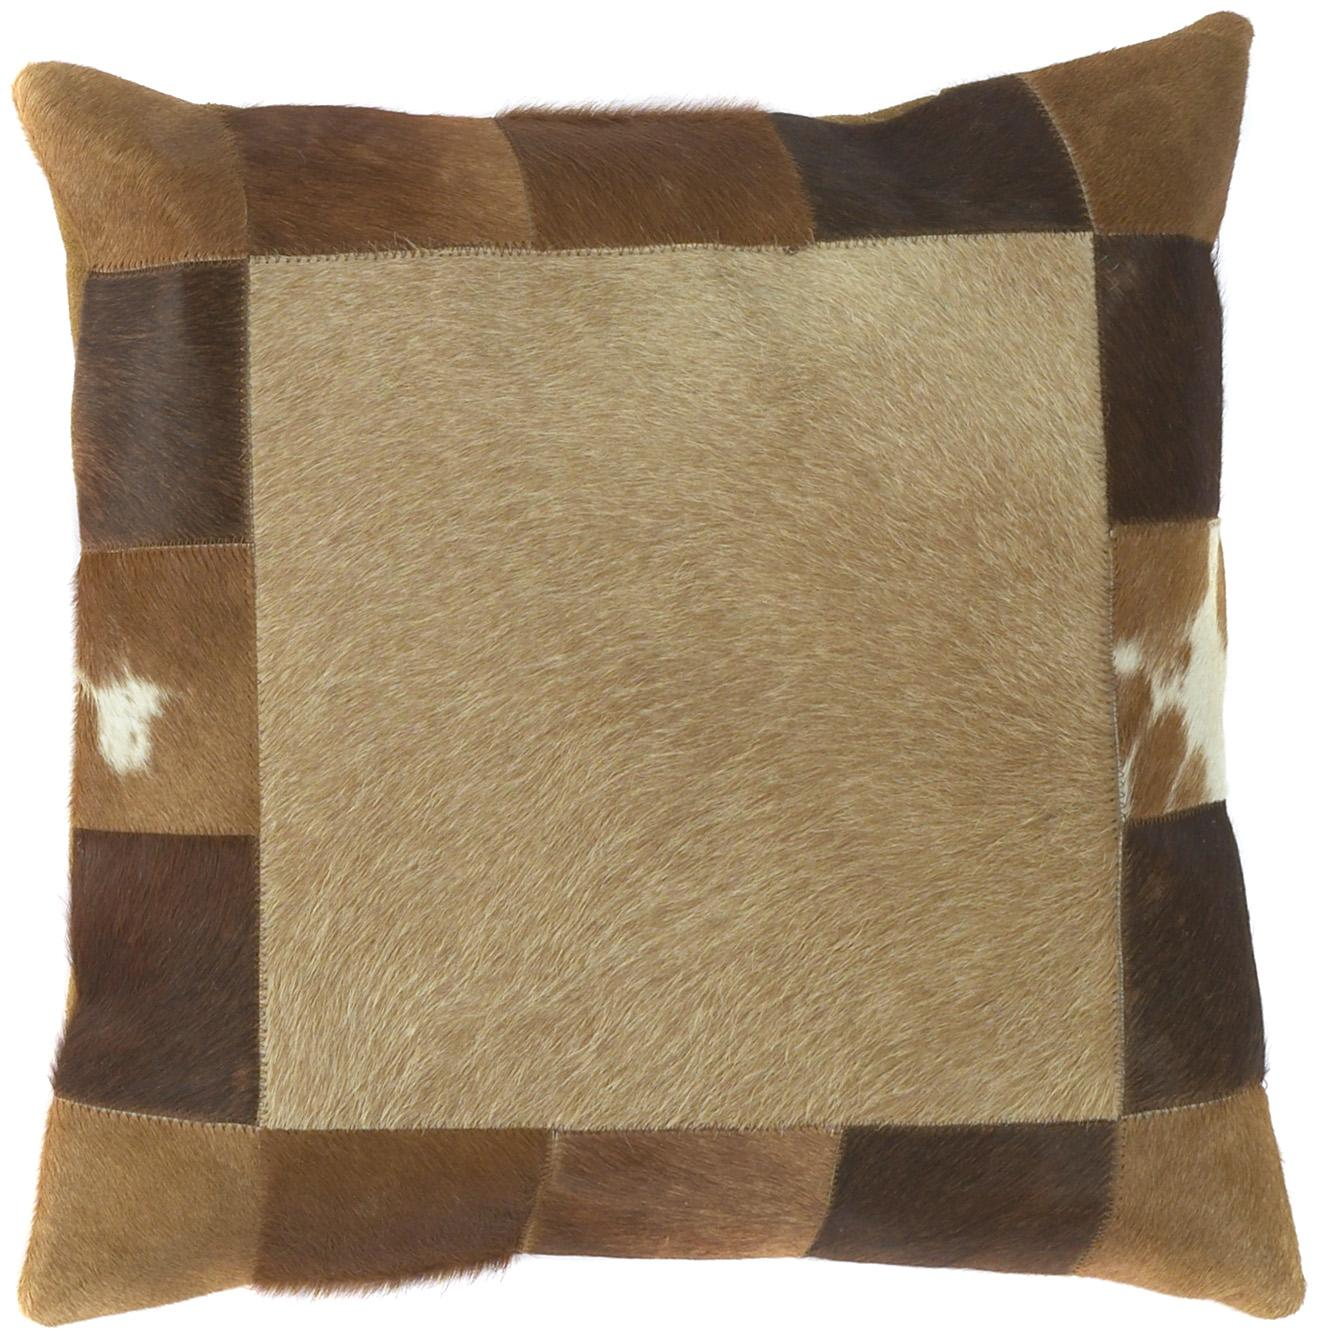 "Surya Rugs Pillows 18"" x 18"" Pillow - Item Number: PMH118-1818P"